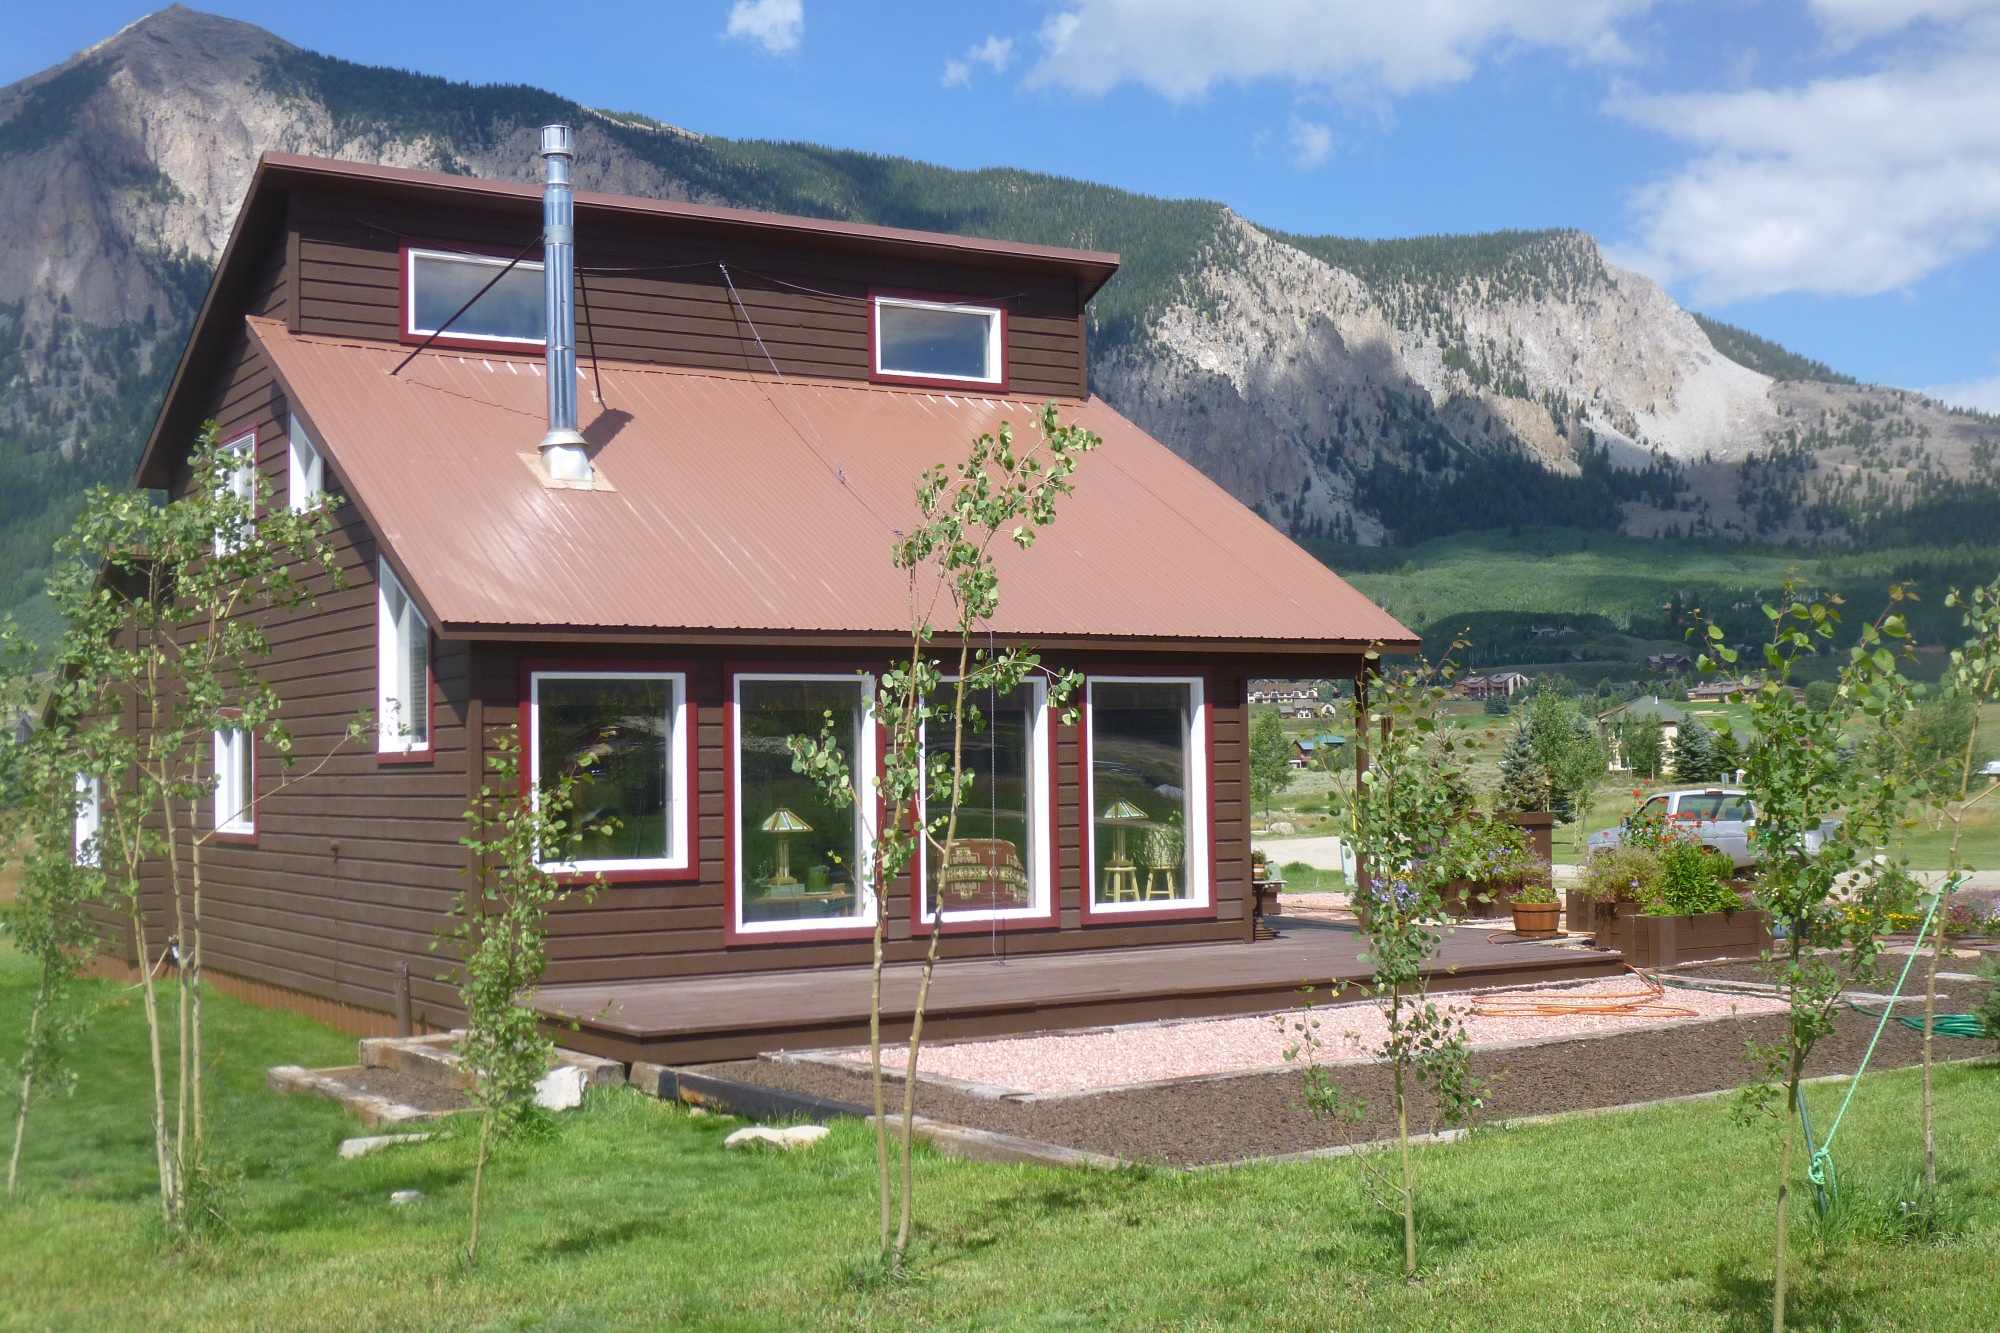 Single Family Home for Sale at Scenic Location 22 Riverbend Drive Crested Butte, Colorado 81224 United States